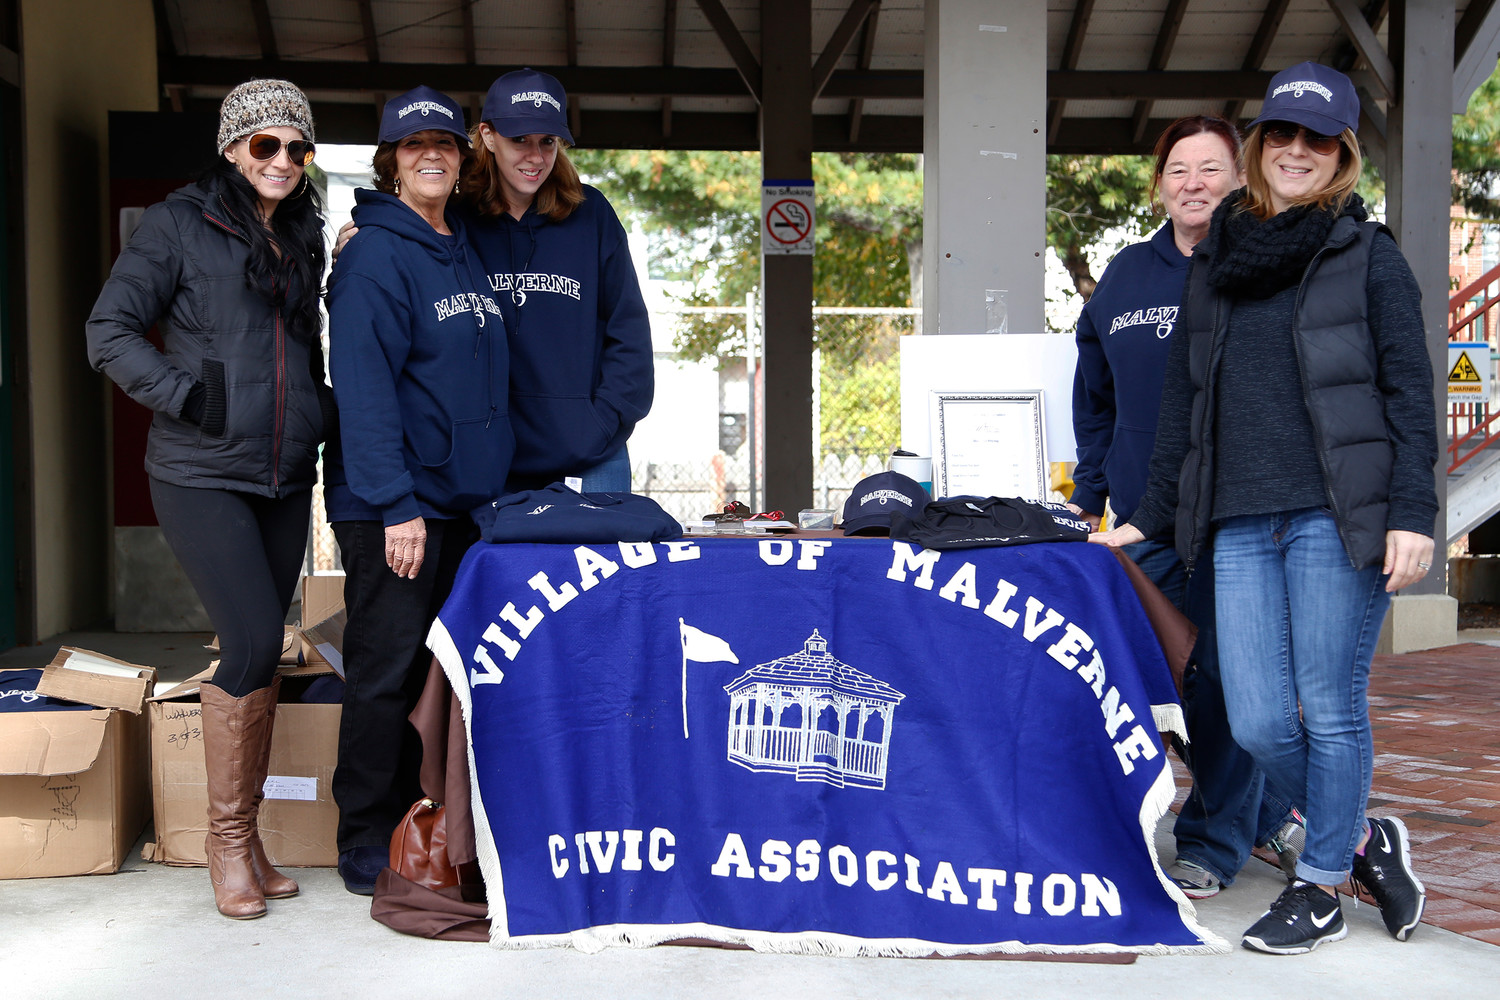 Malverne Civic Association members, from left, Suzanne Parra, Toni Sussman, Kristen Smith, Kathi Monroe and Jennifer Prizzi hosted the group's annual E-Cycle event at the Malverne train station in November.